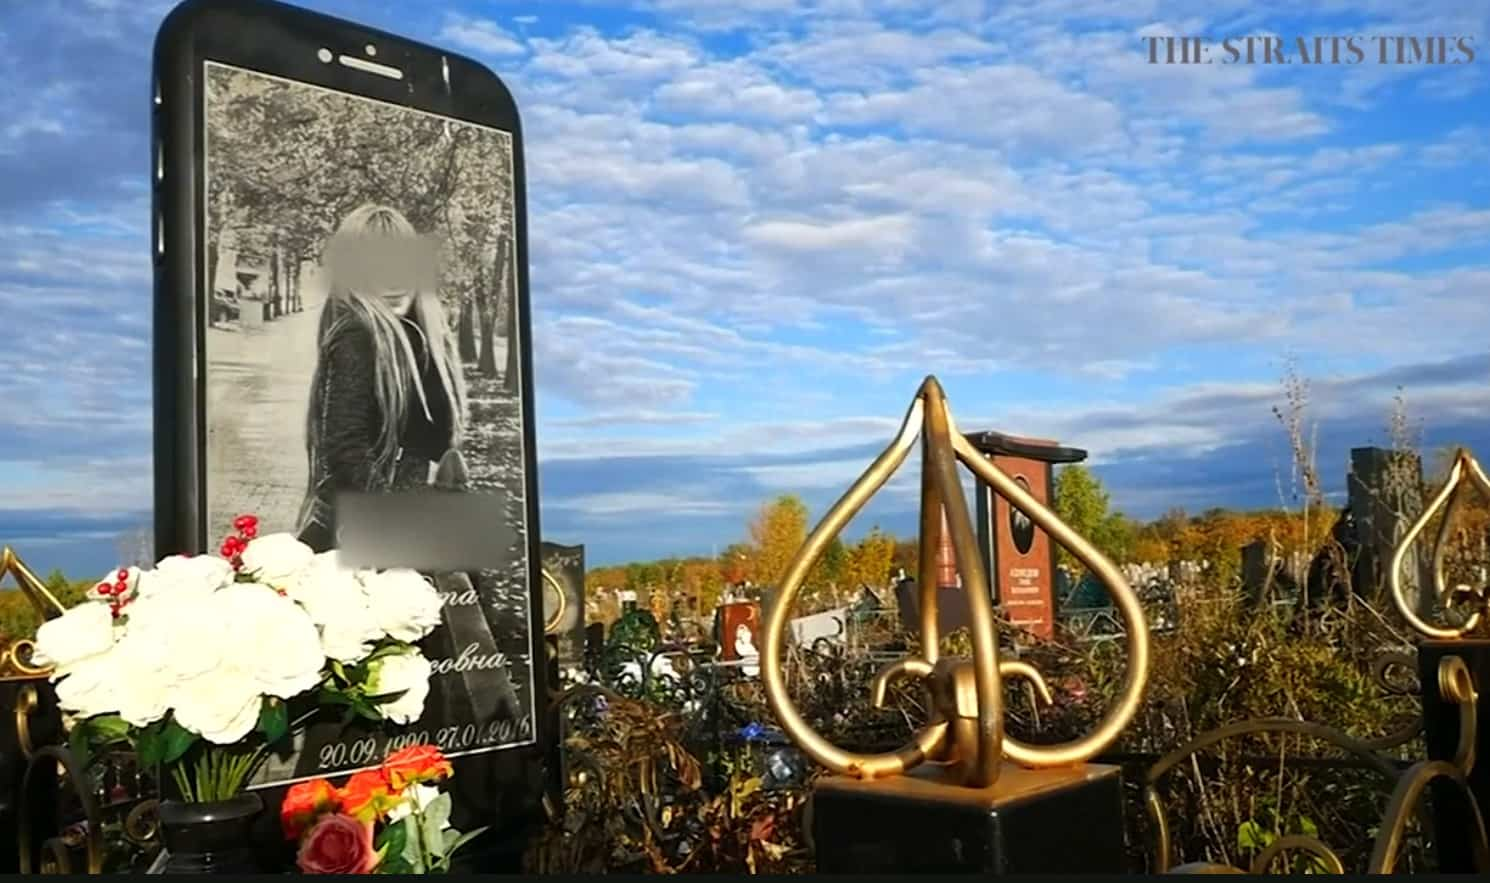 Spotted: This Gravestone Looks Just like an iPhone